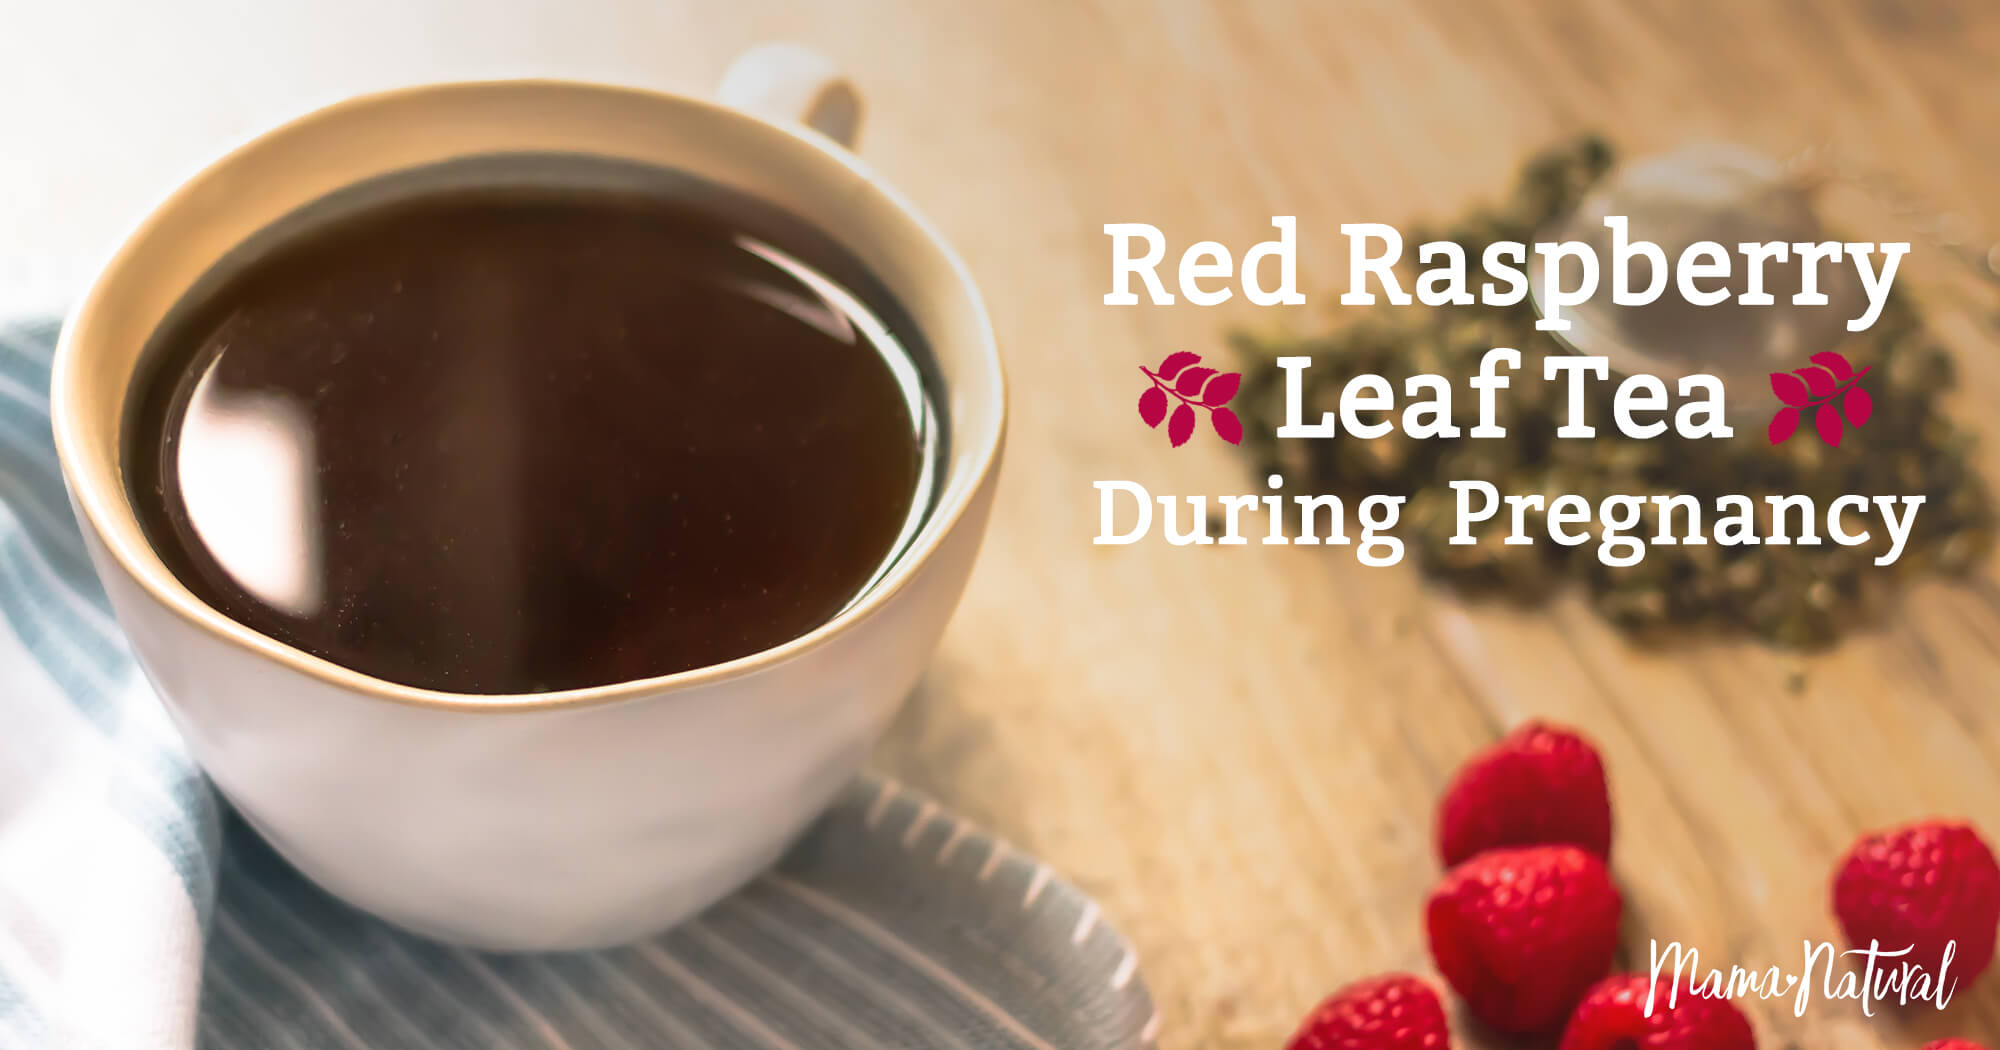 The Truth About Red Raspberry Leaf Tea During Pregnancy